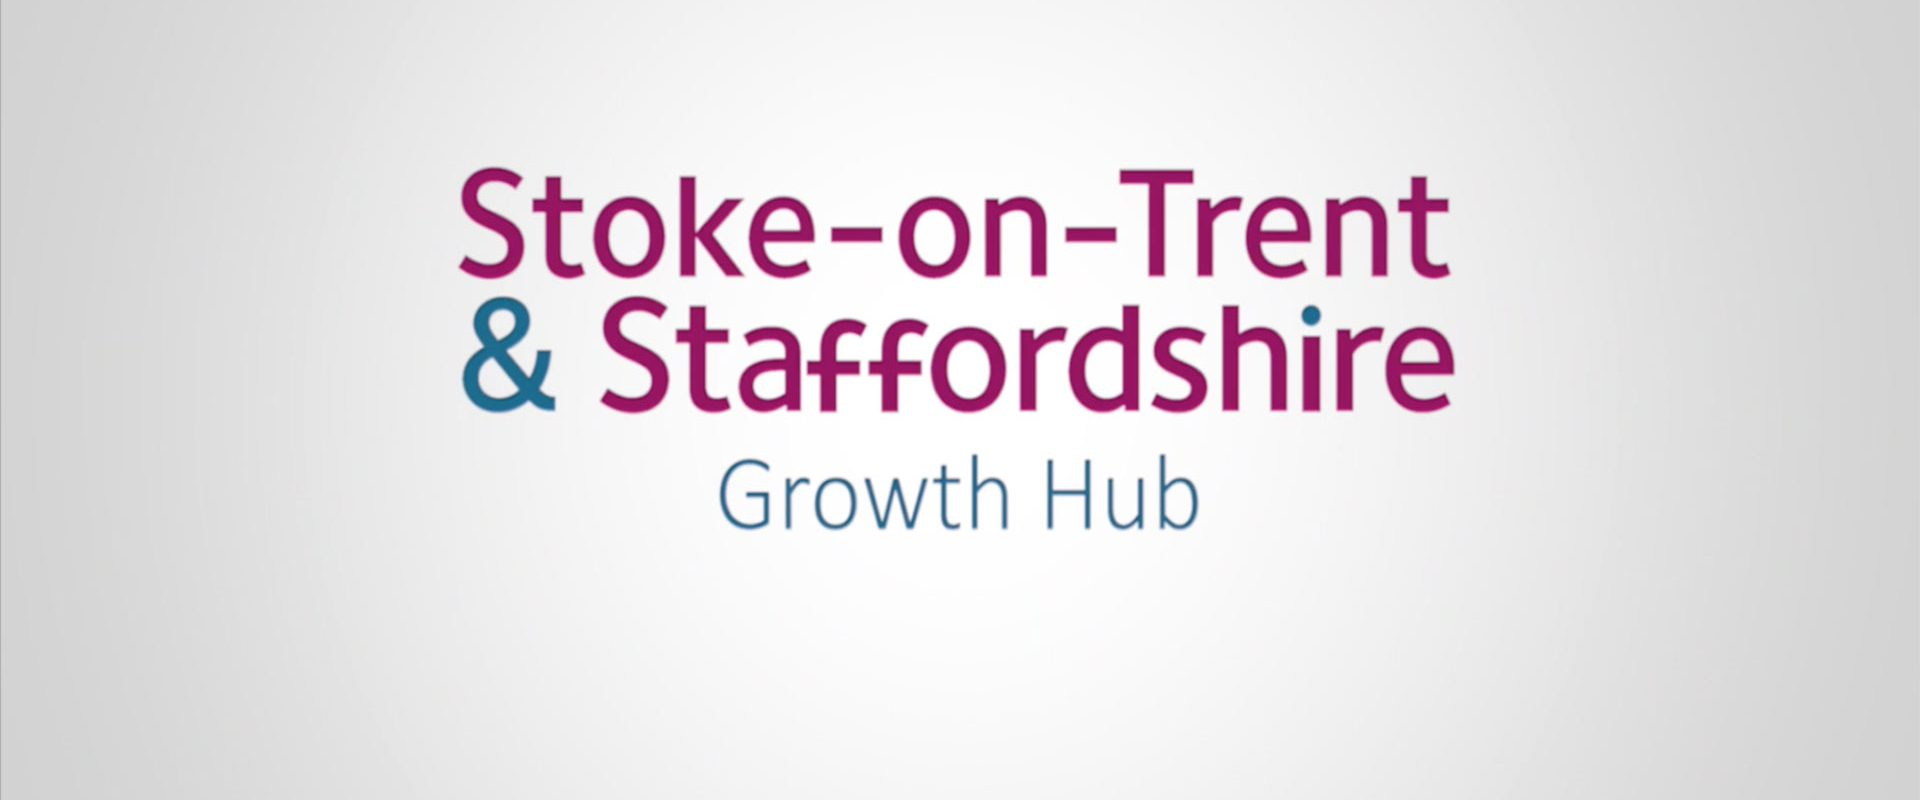 Growth Hub Free 1-2-1 Business Support Clinic: Stoke